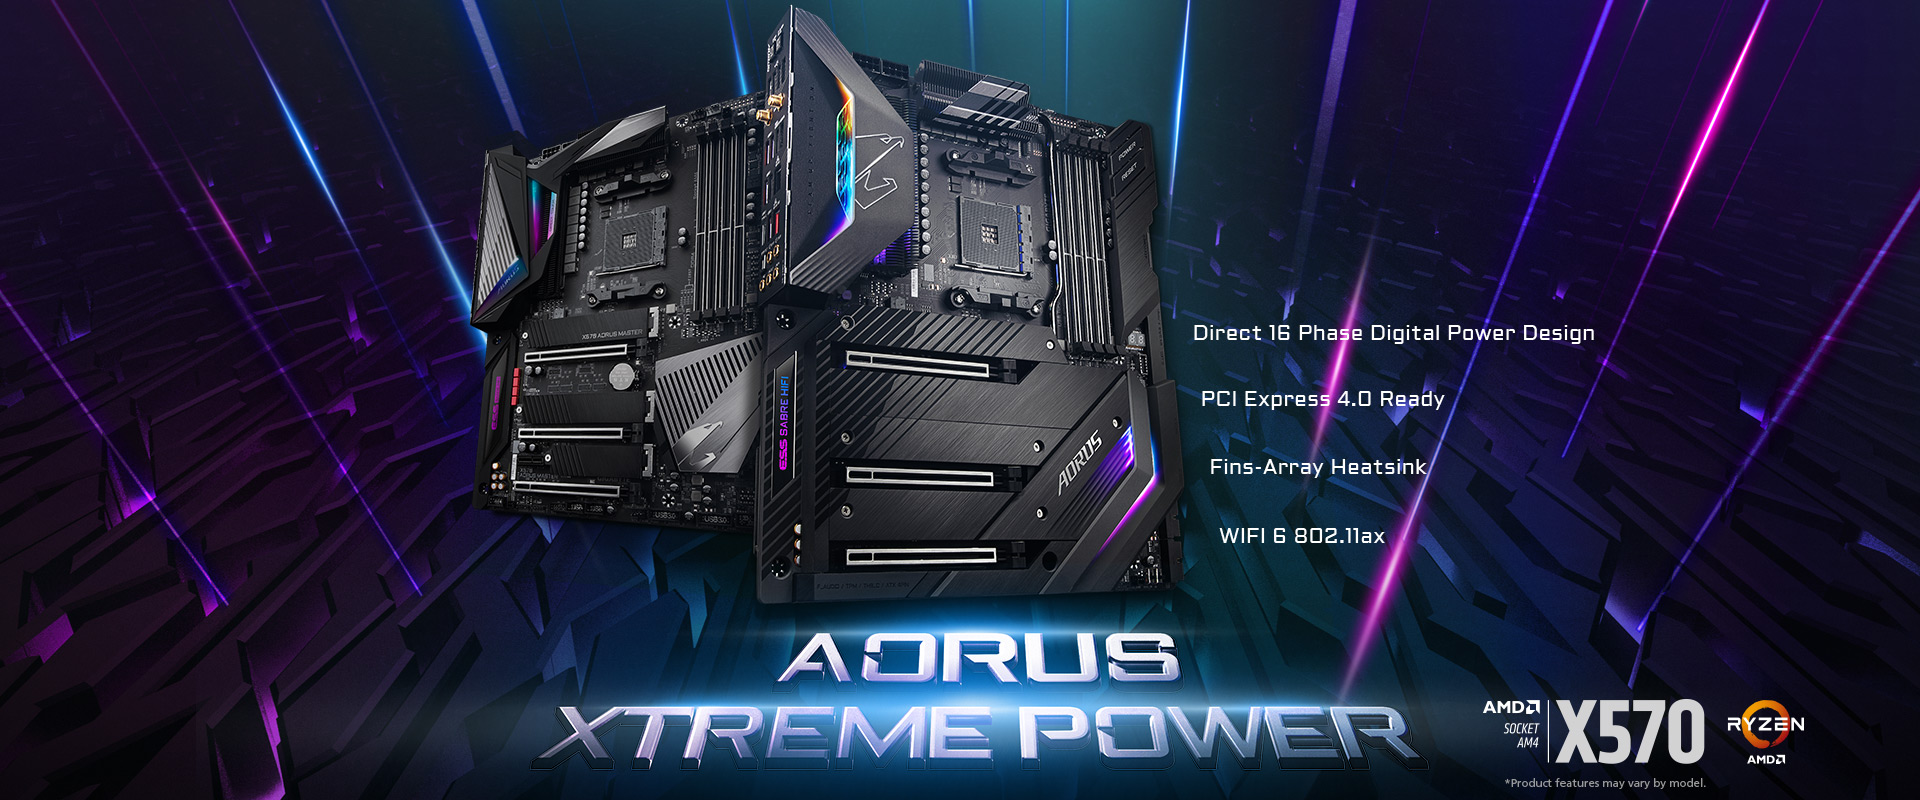 GIGABYTE Advances To PCIe 4.0 With X570 AORUS Motherboards